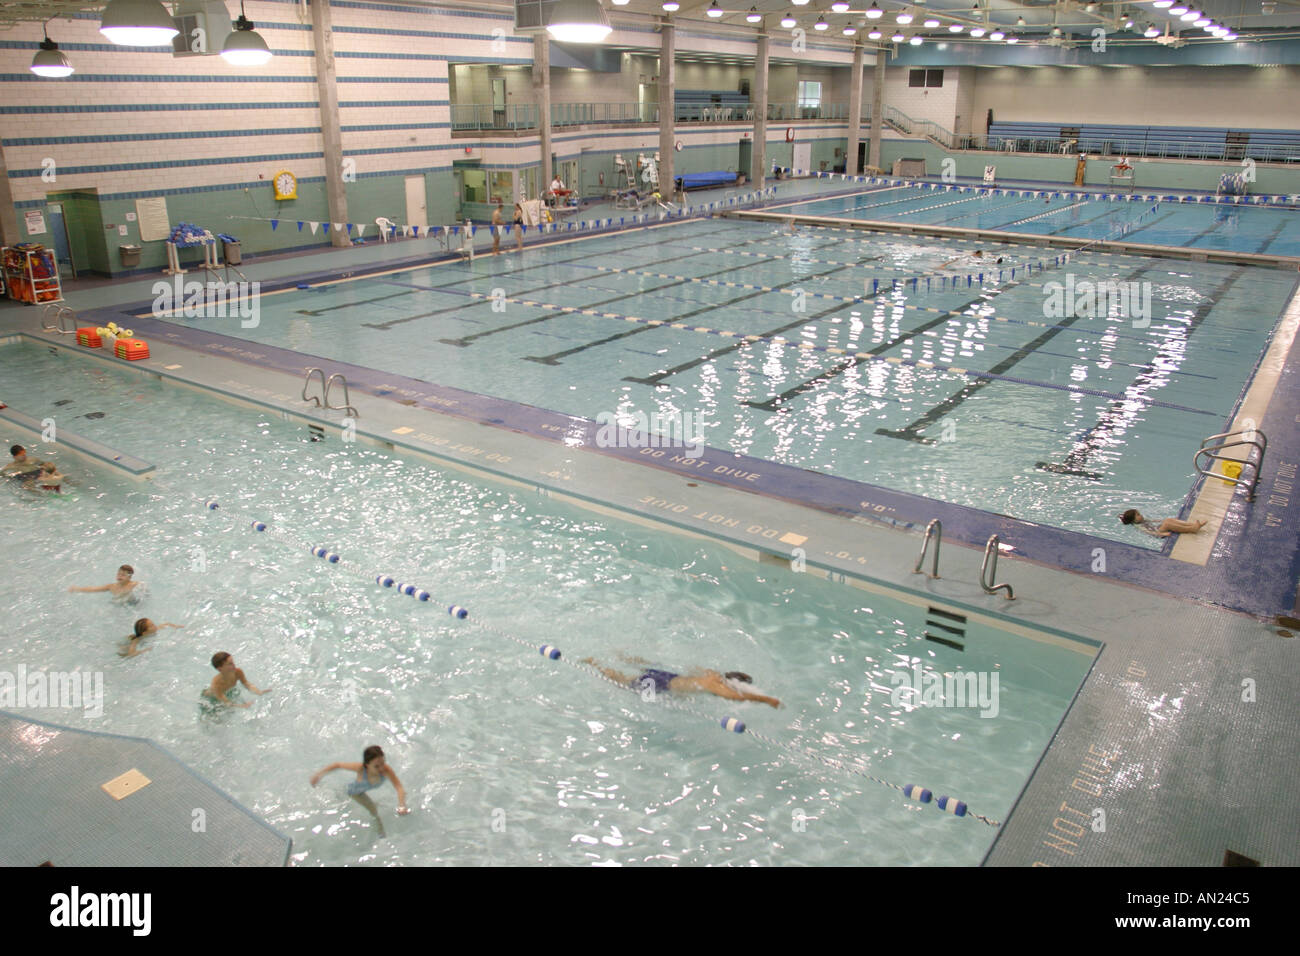 Raleigh North Carolina Pullen Park City Aquatic Center Stock Photo Royalty Free Image 1385668